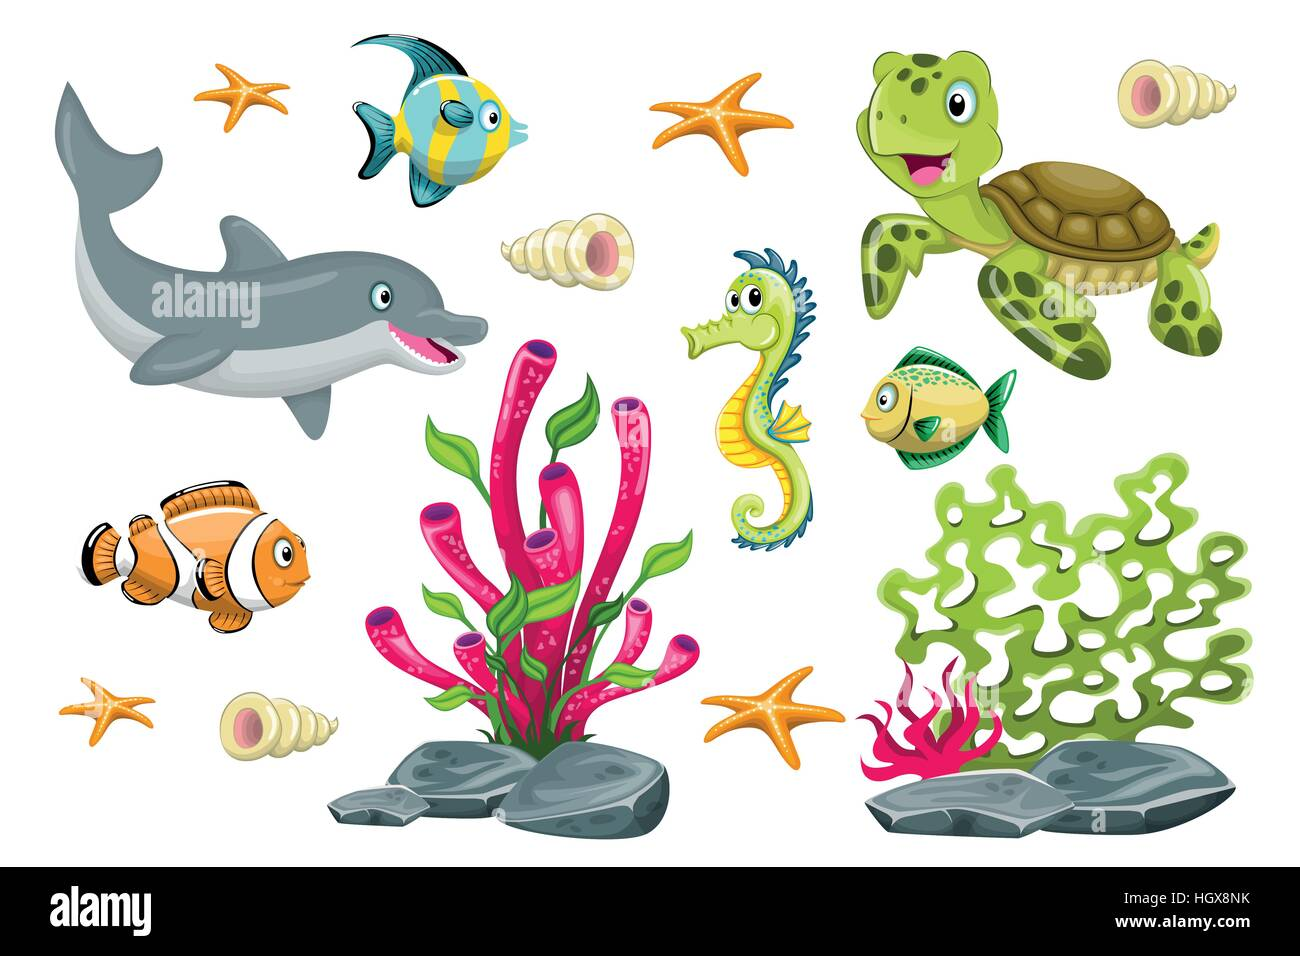 Set of cartoon marine animals - Stock Image